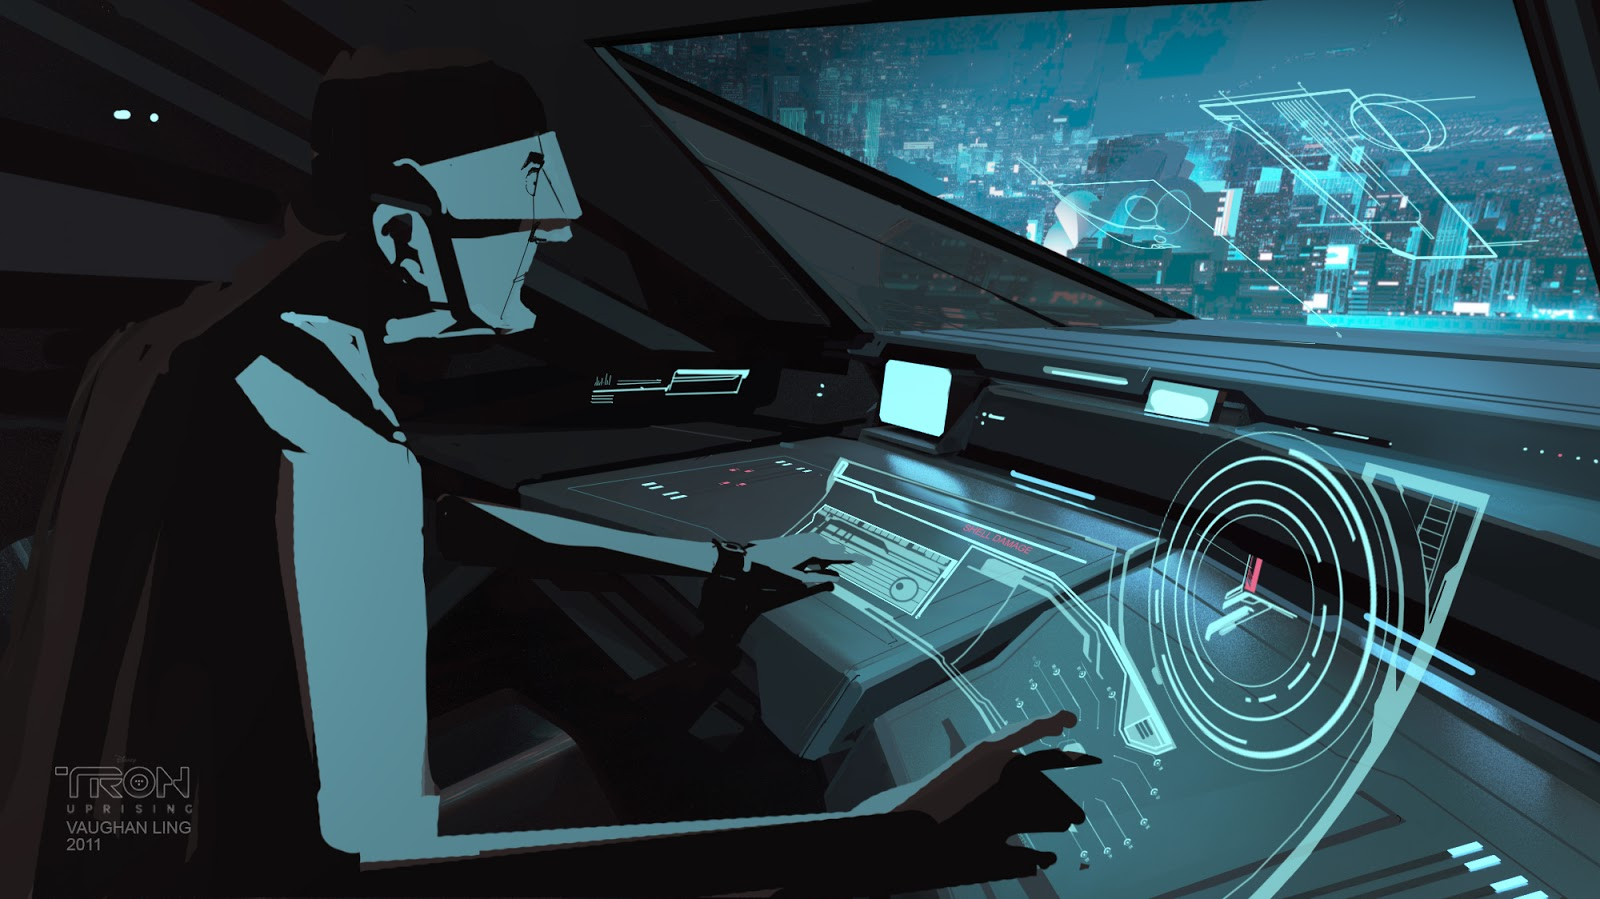 tron concept uprising ling vehicle background vaughan coke boys disney designs studio archive animation moar